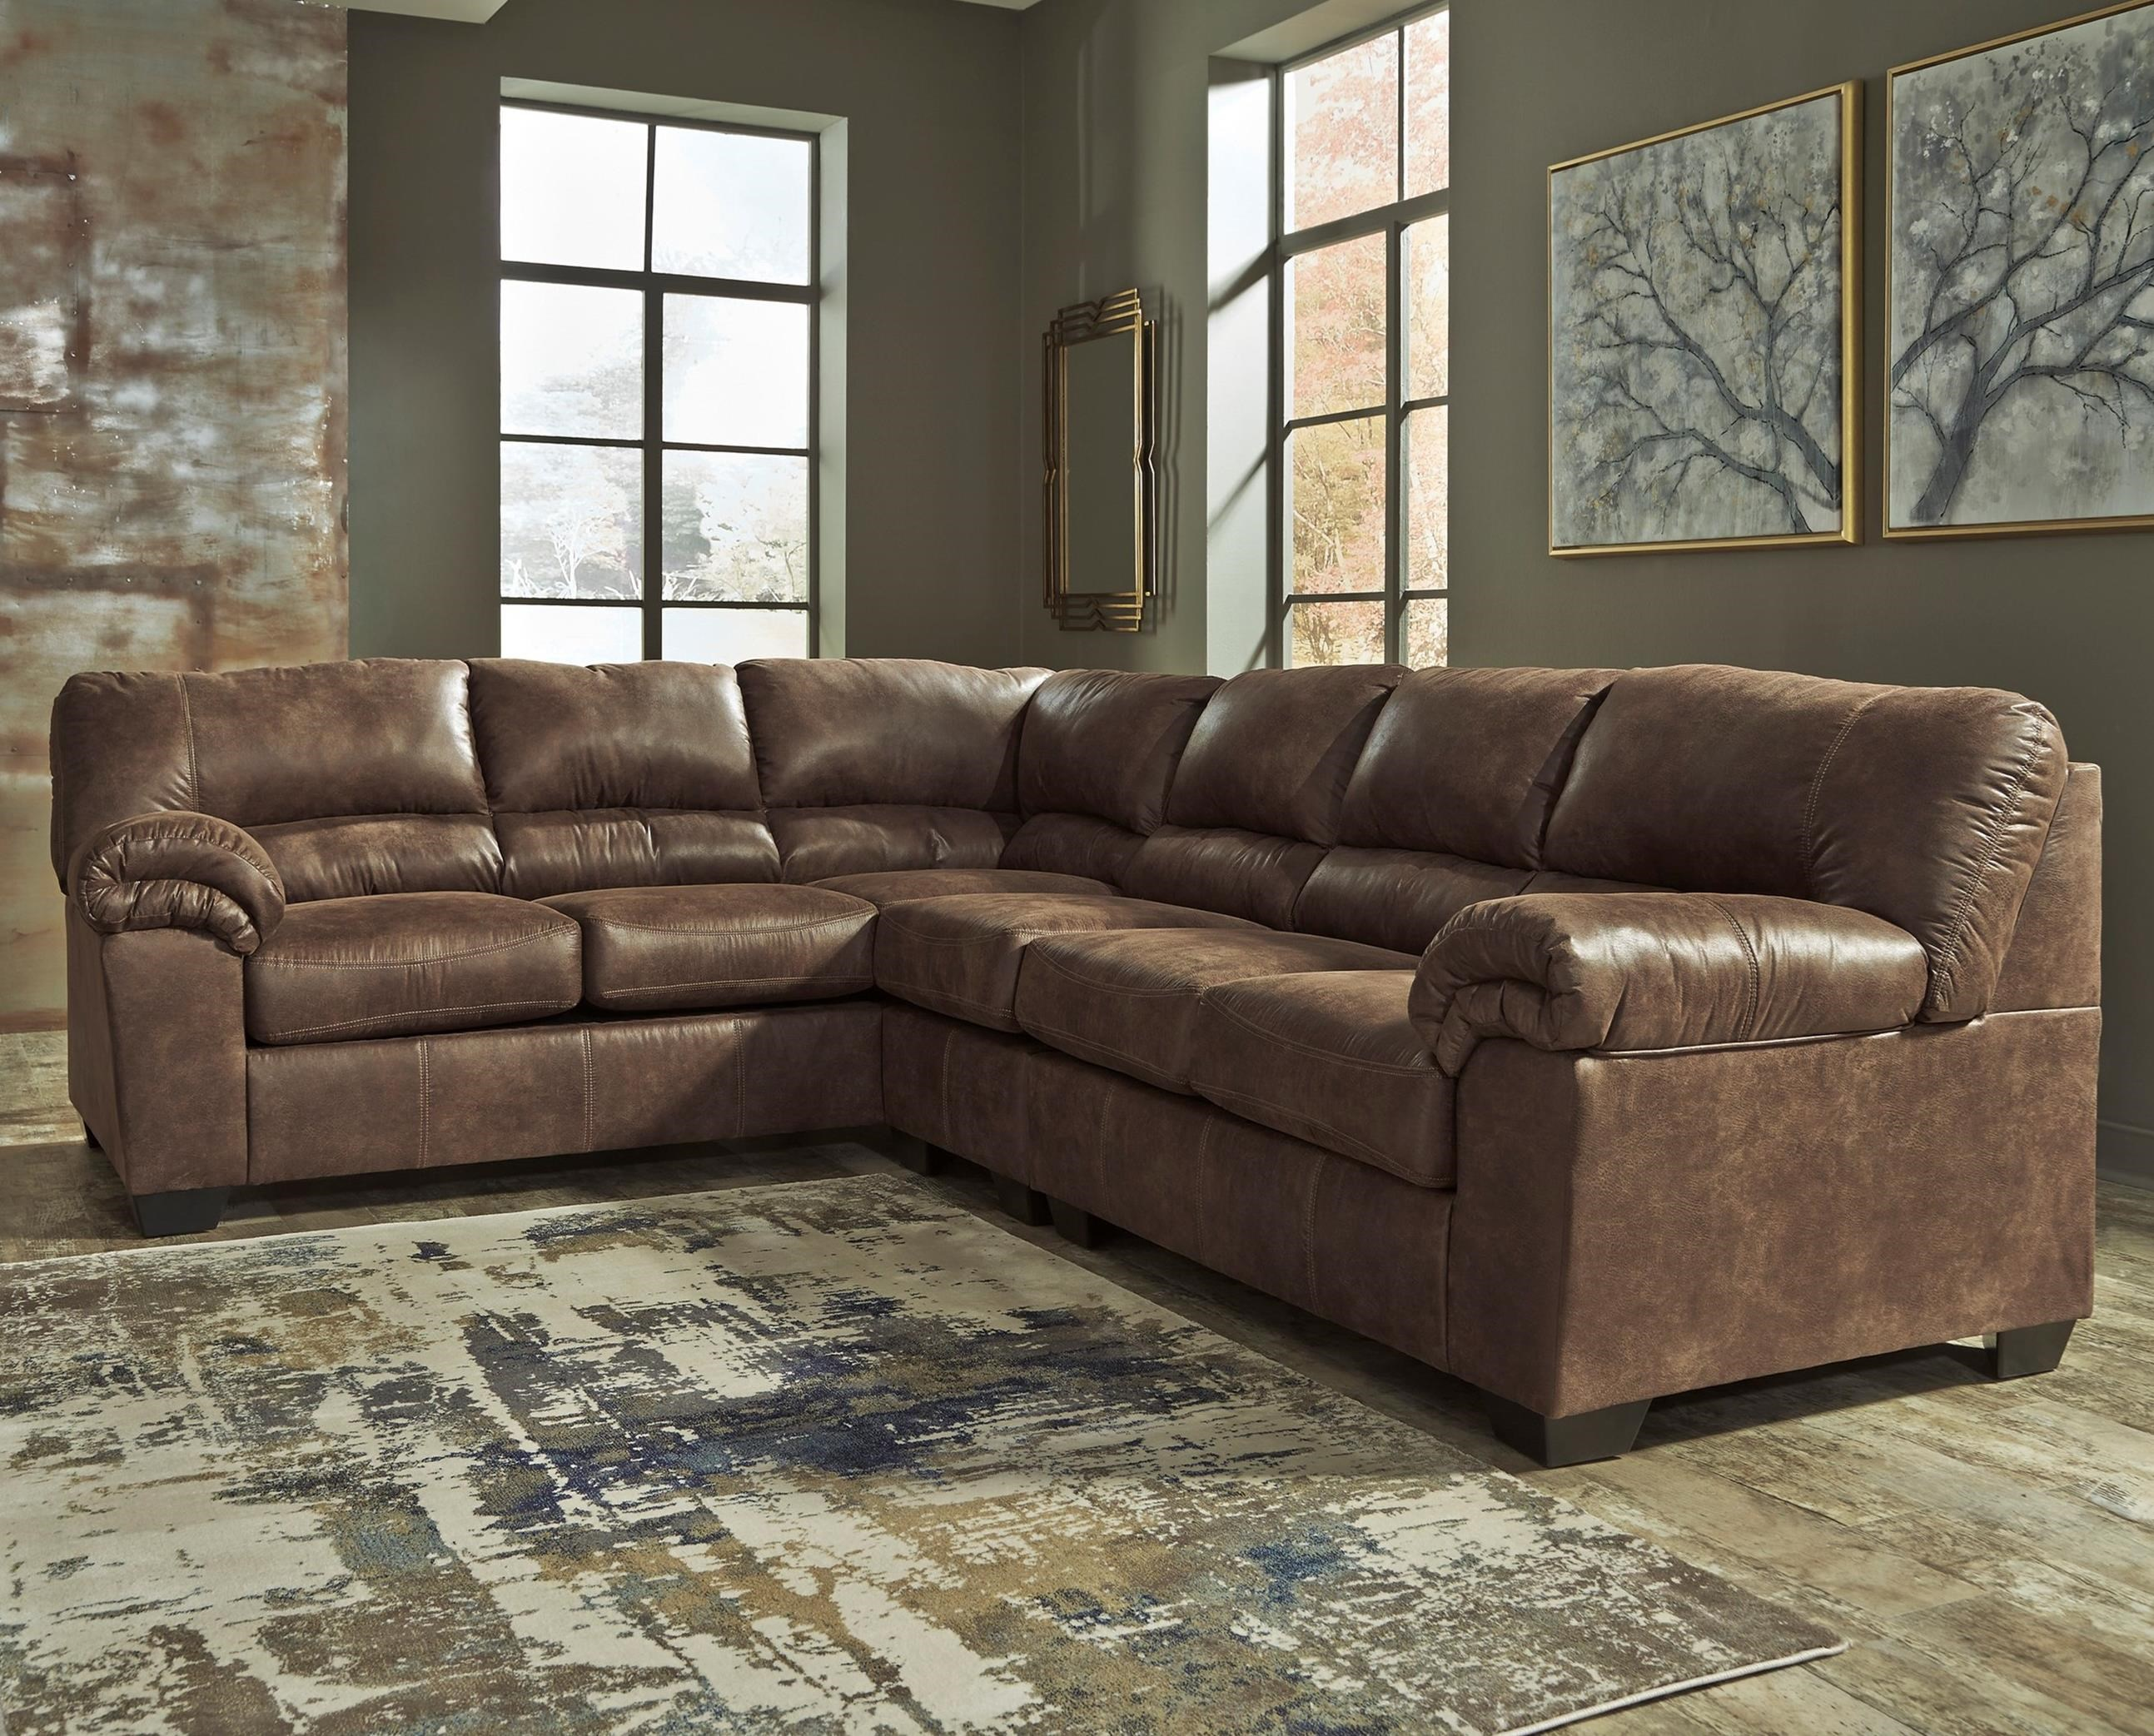 chaise sofas perth warehouse direct bayswater sofa deals sydney signature design by ashley bladen 3 piece sectional